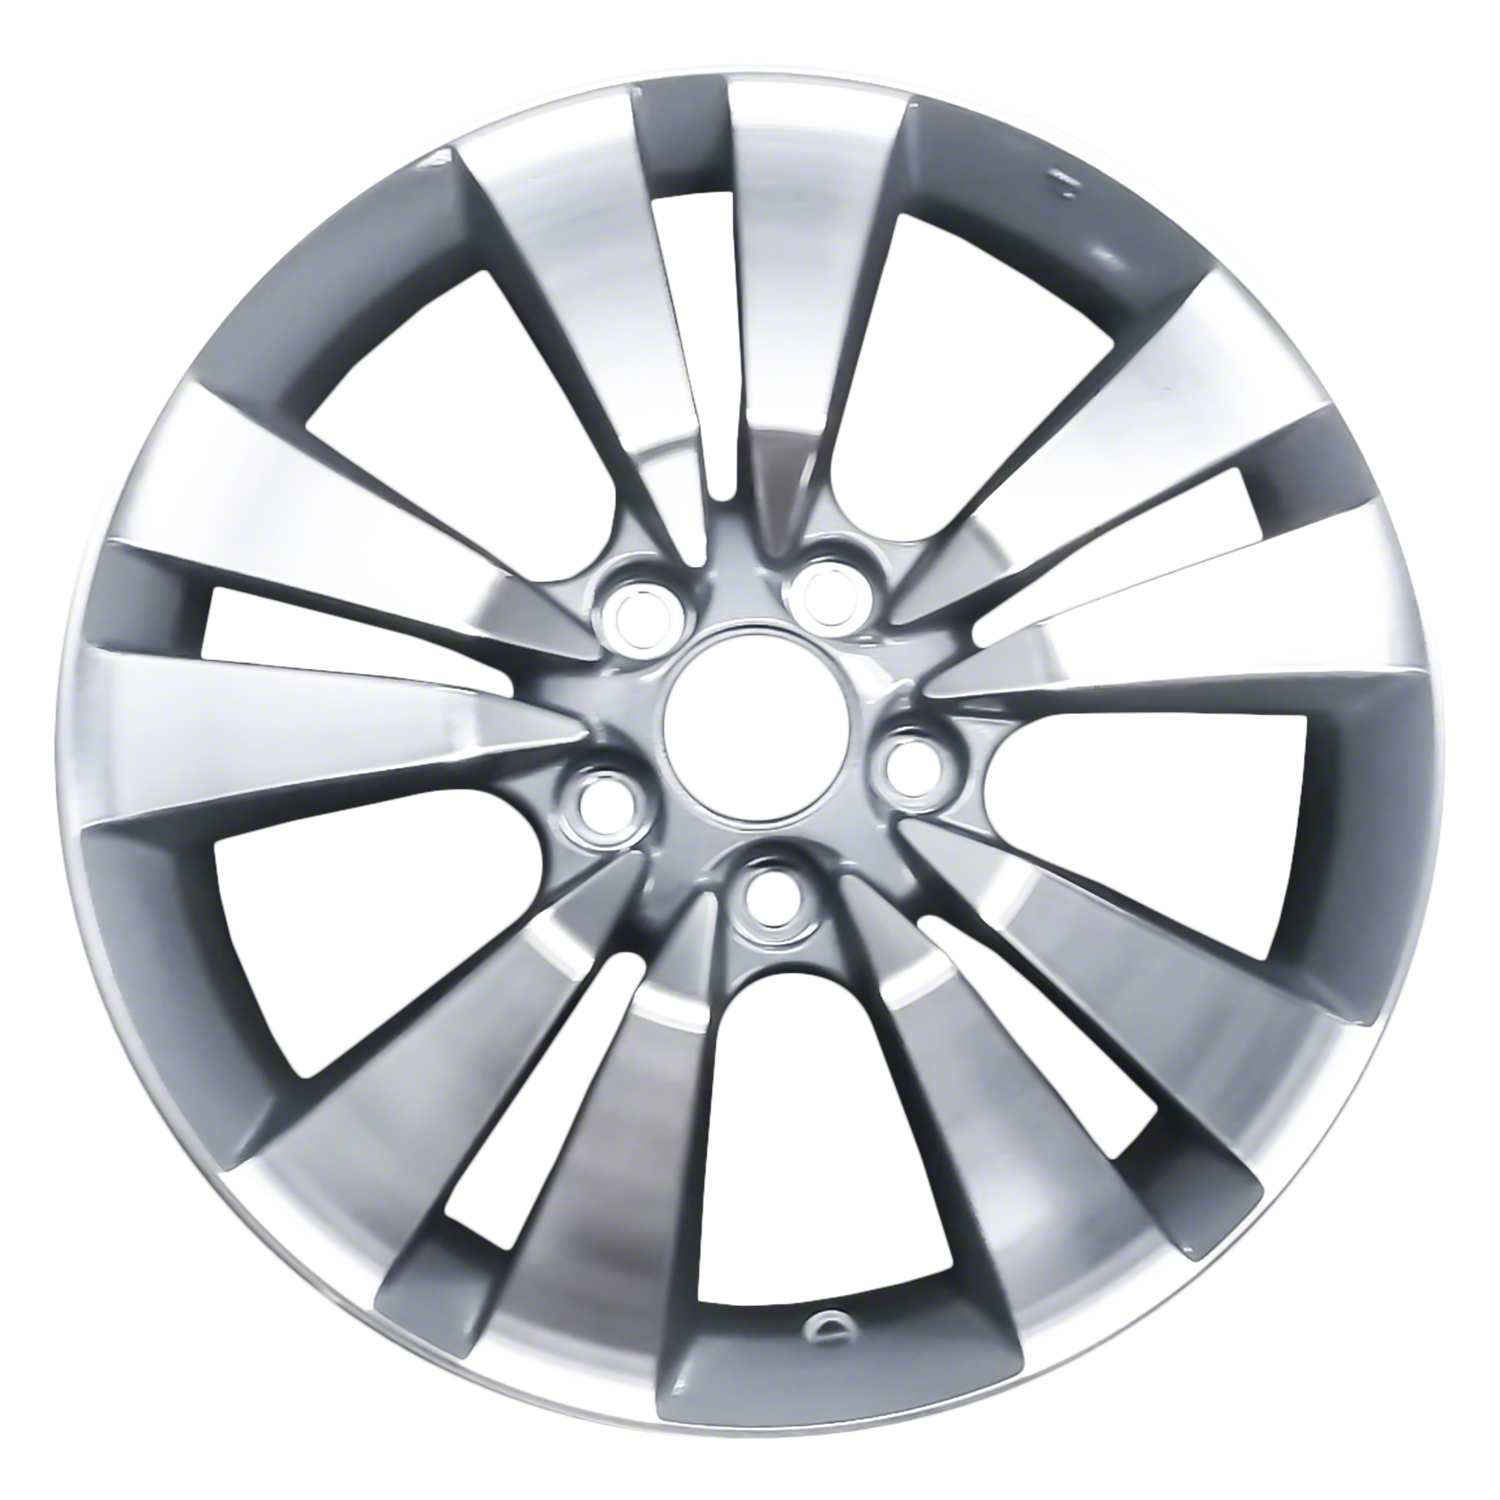 2008-2013 Honda Accord::Coupe  17x7.5 Alloy Wheel, Rim Medium Charcoal Textured with Machined Face - 63938